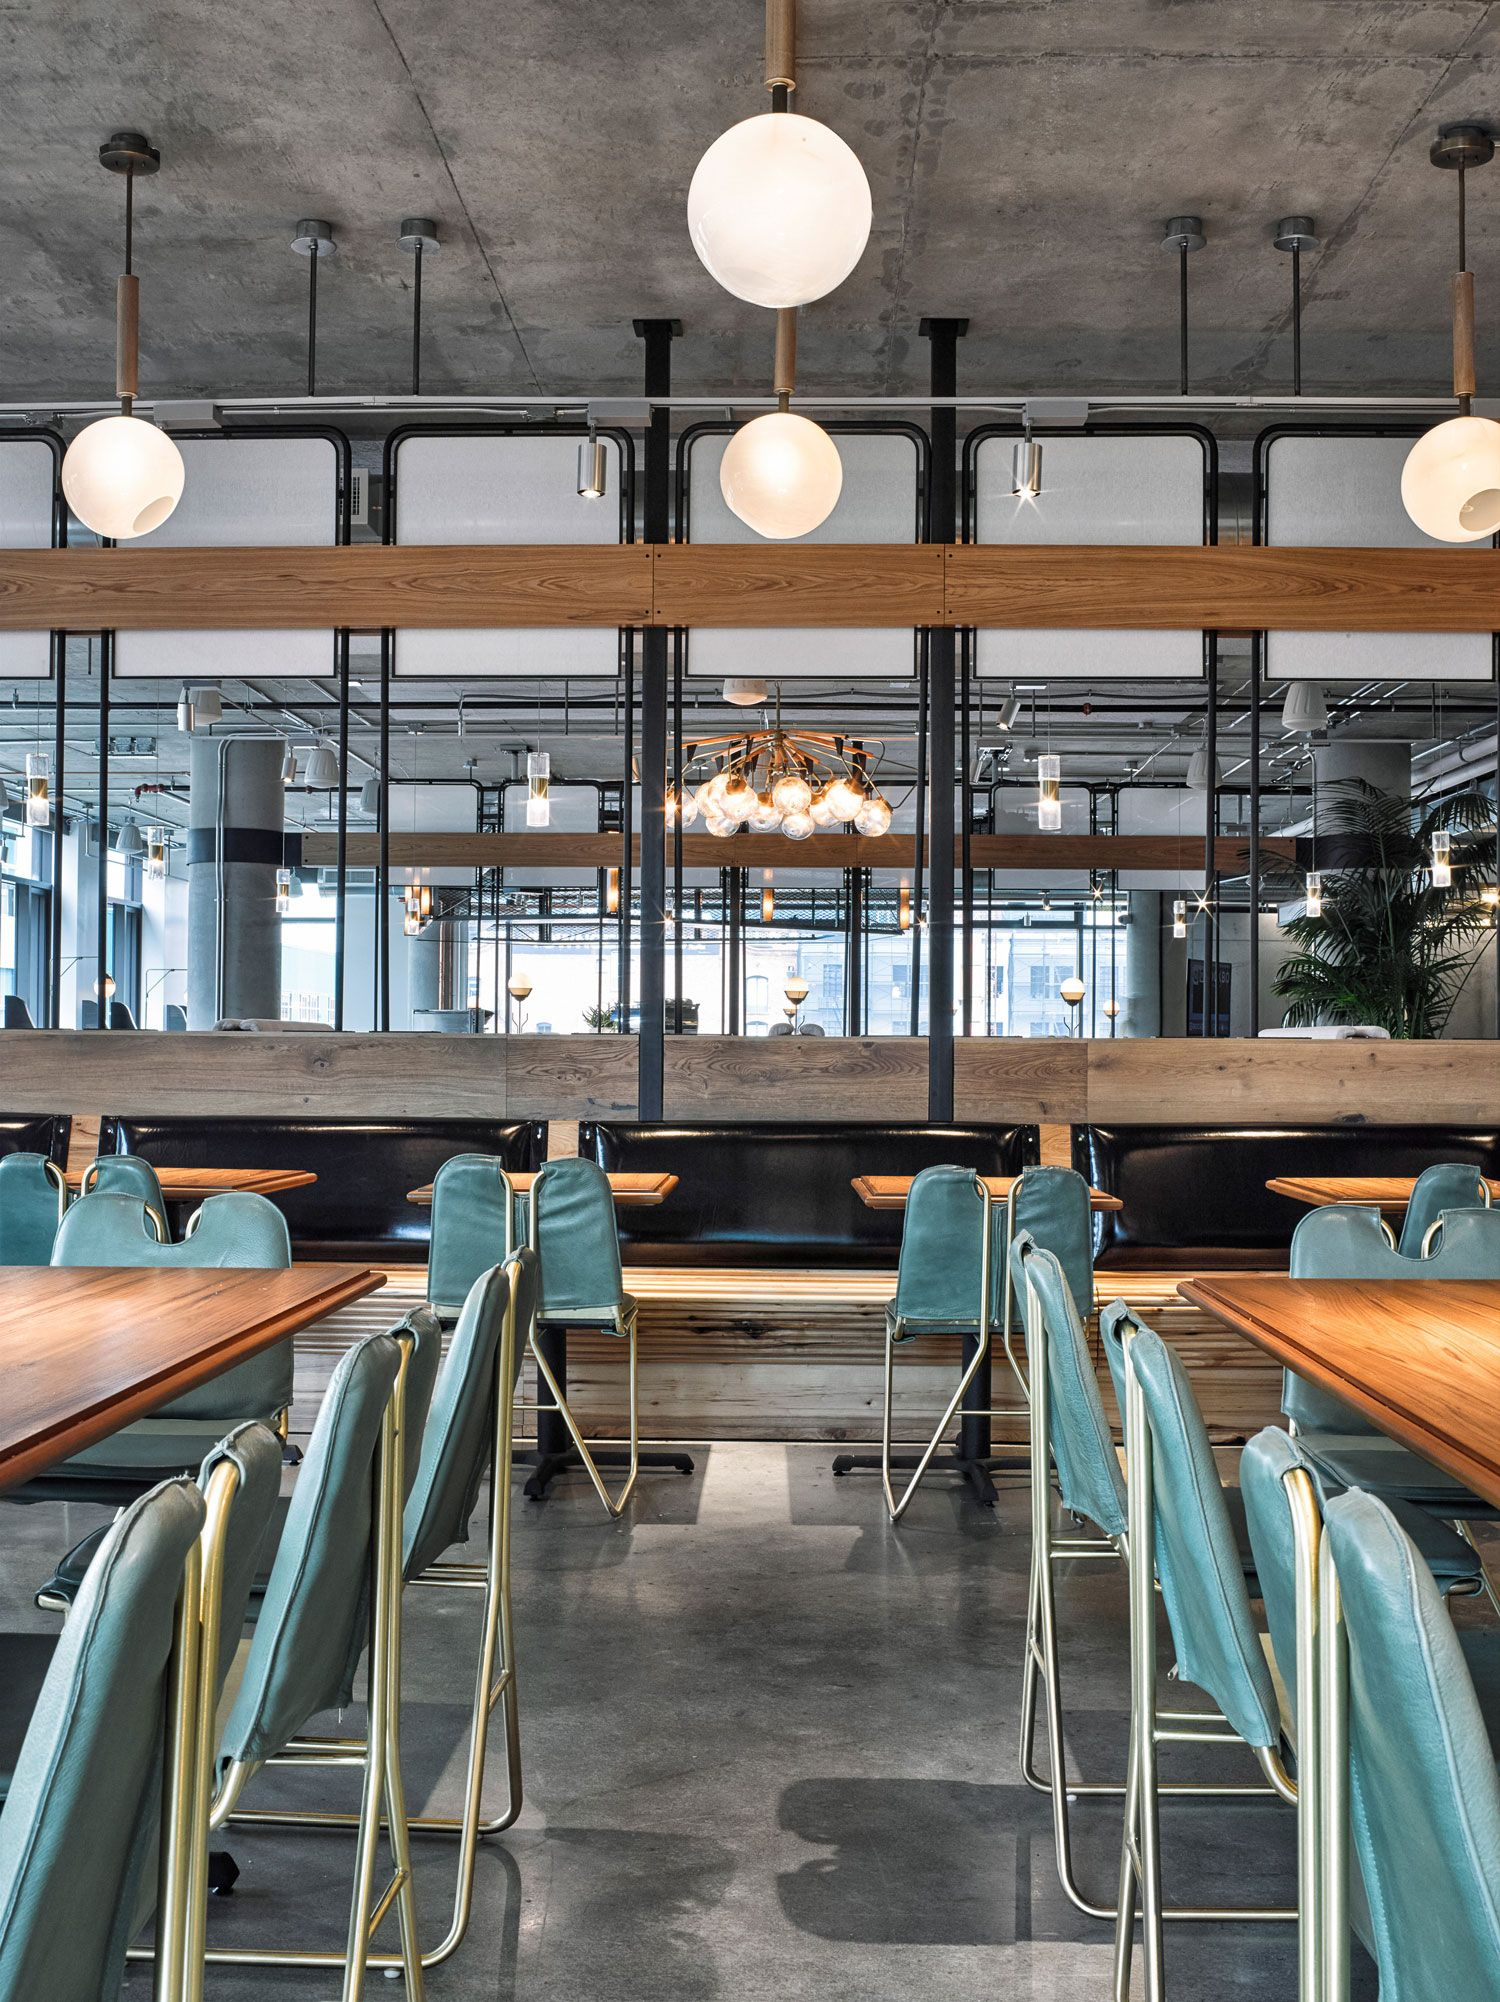 avroko designs a workplace cafeteria for dropbox. | restaurants